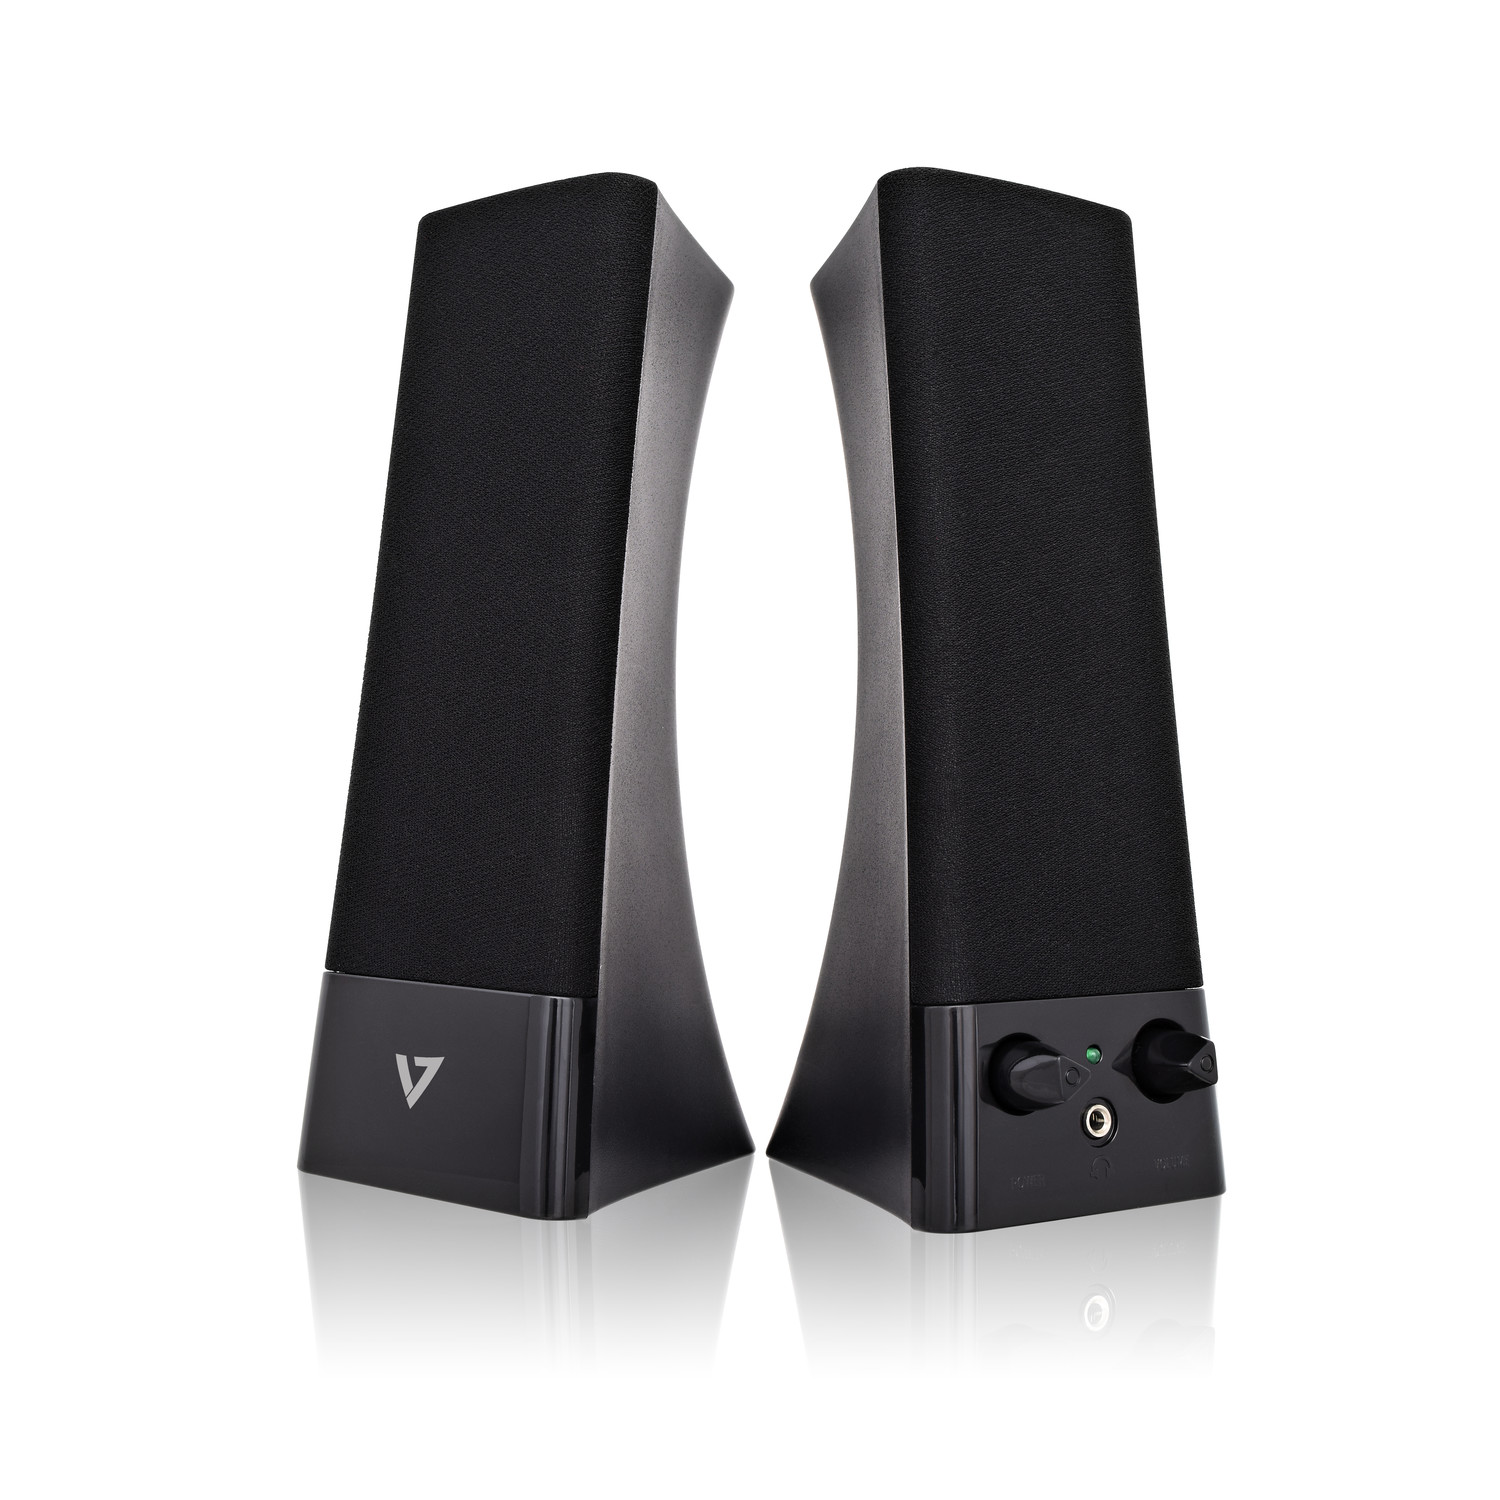 V7 SP2500-USB-6N Speaker System - 5 W RMS - Black - 100 Hz to 20 kHz - USB 3.5MM INPUT 5W RMS VOL CNTRL BLK